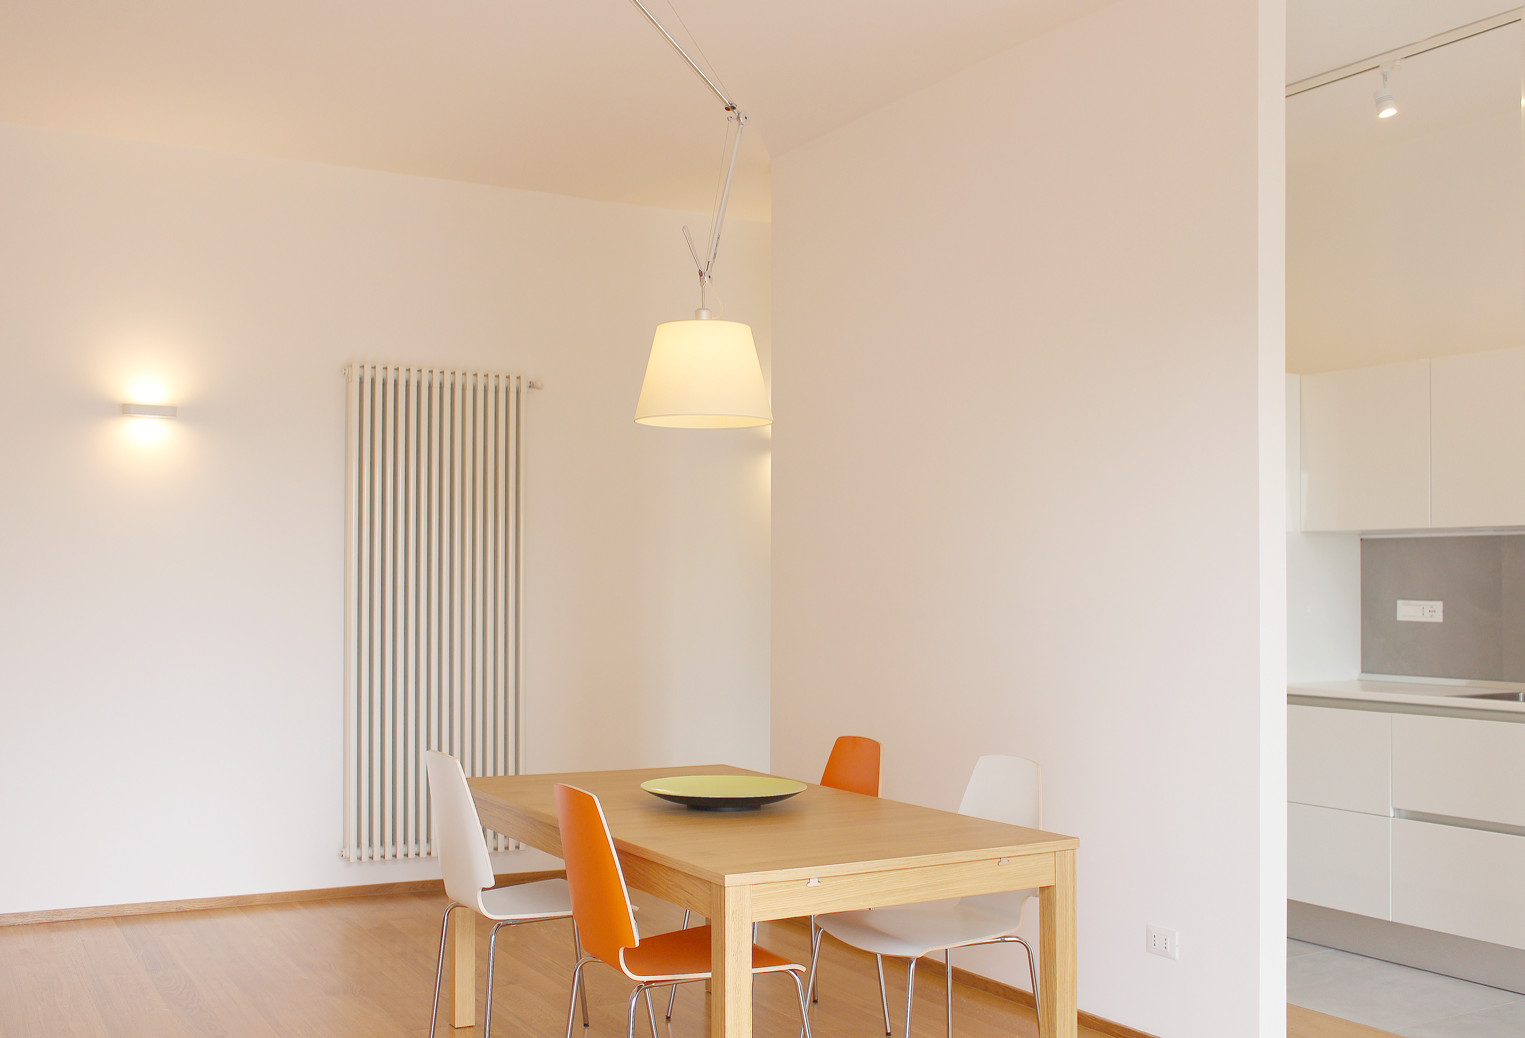 Inspiration for a contemporary dining room remodel in Catania-Palermo